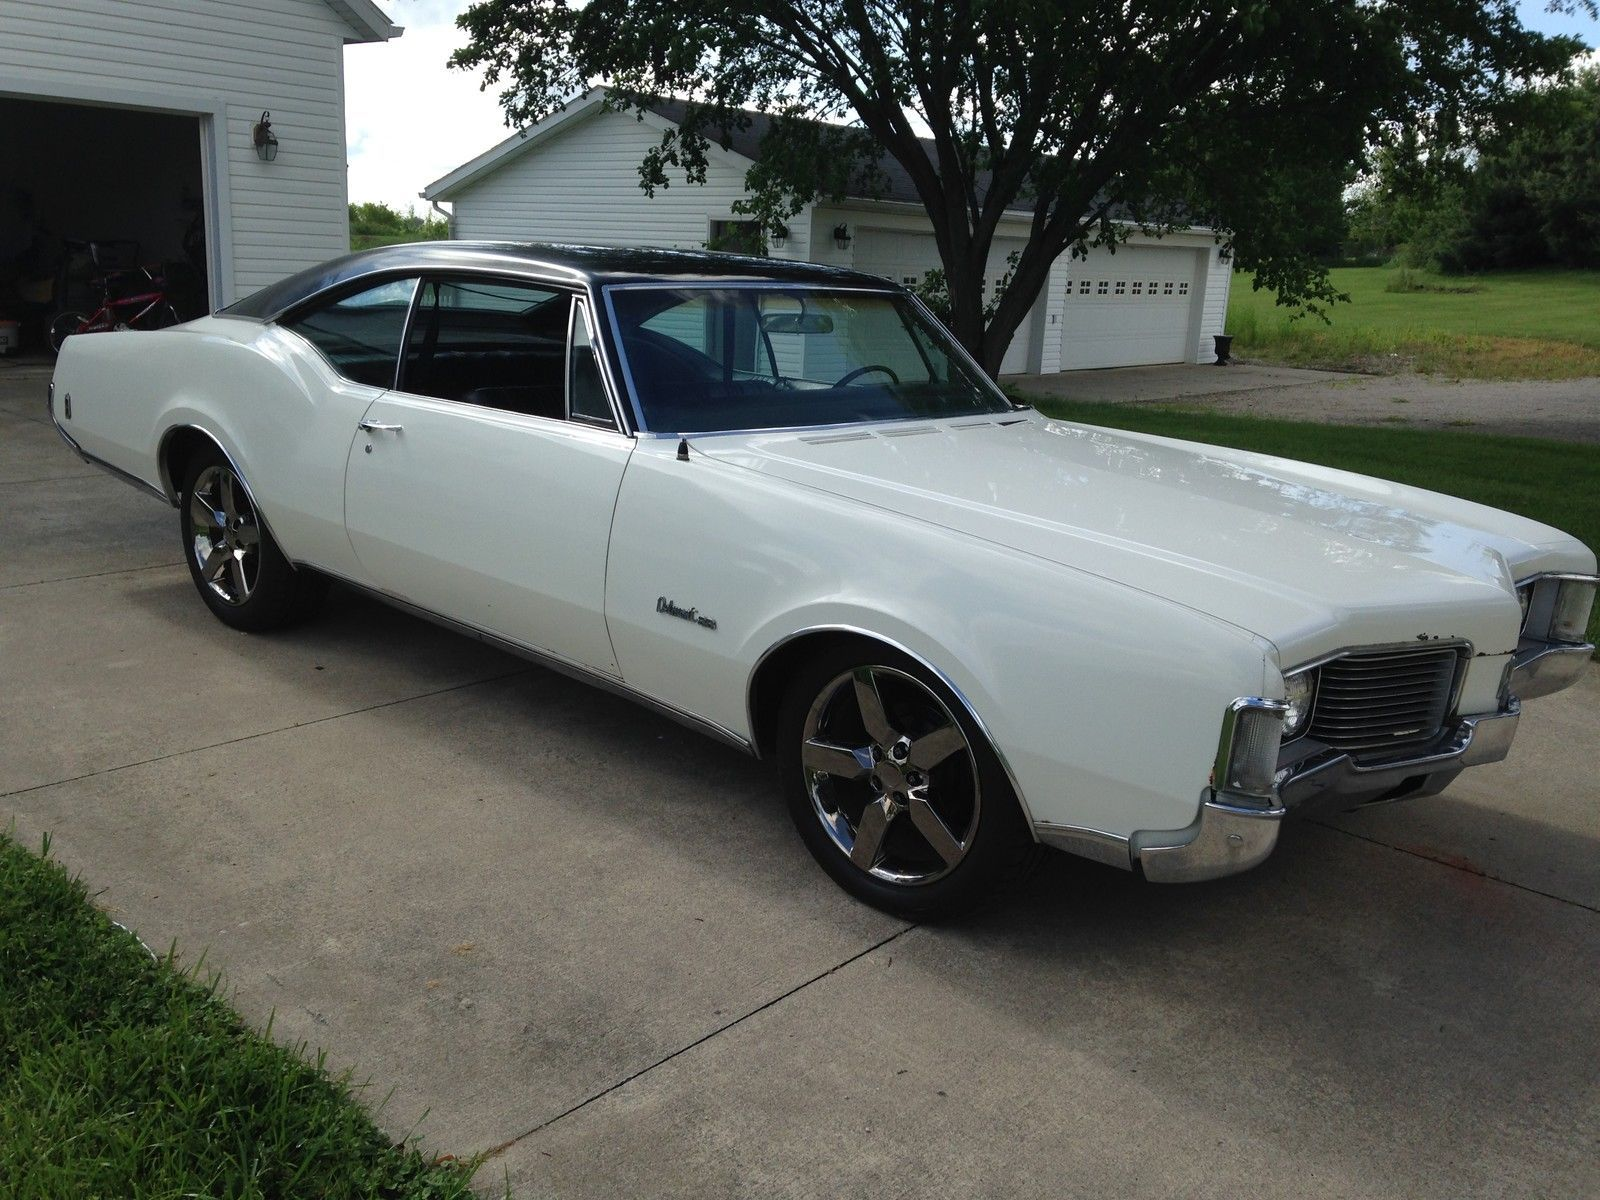 1968 Oldsmobile Delmont 88 455 7 5L 2 Door to Find out more